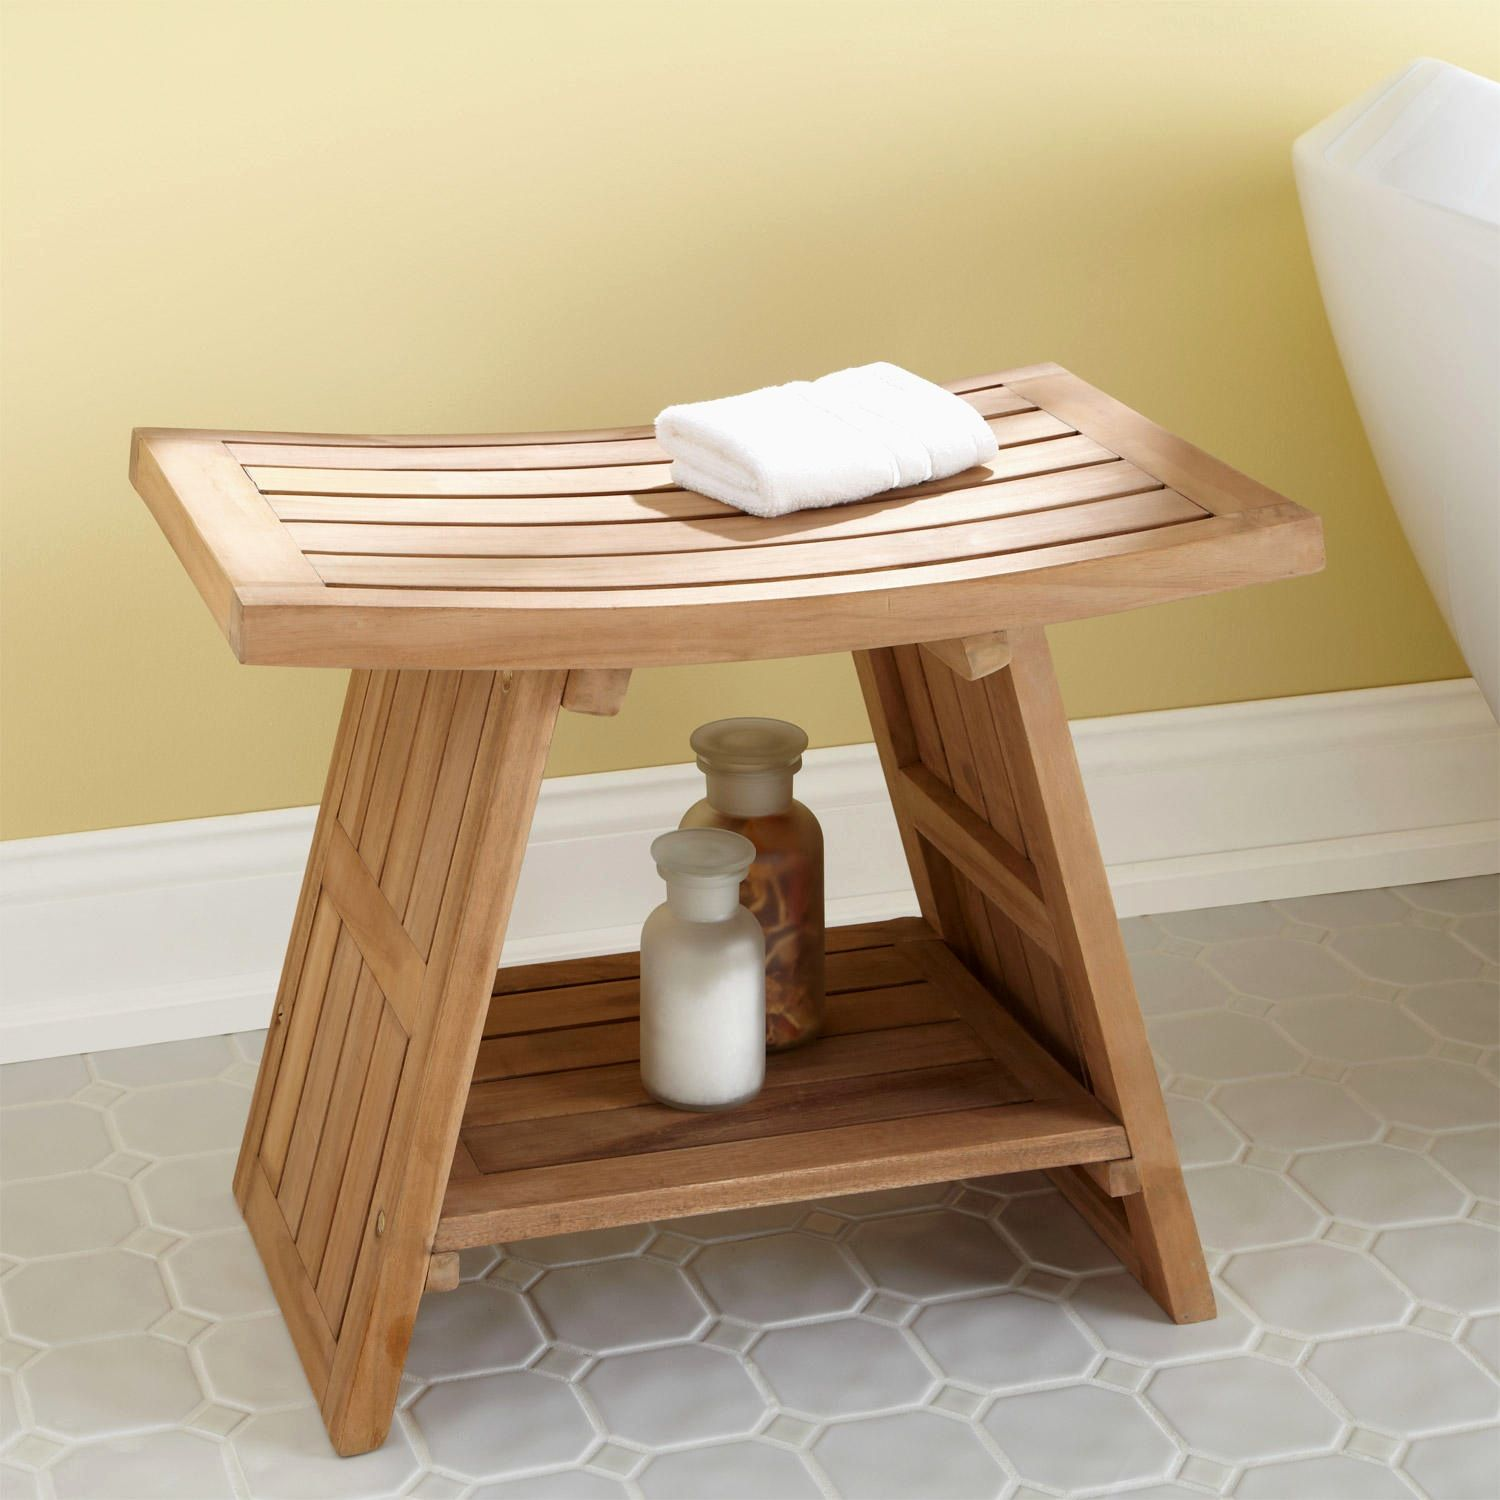 Small Bathroom Chairs Awesome Bathroom Benches And Stools Bathroom Stools Shower Stool Shower Stool Teak Shower Bench Teak Shower